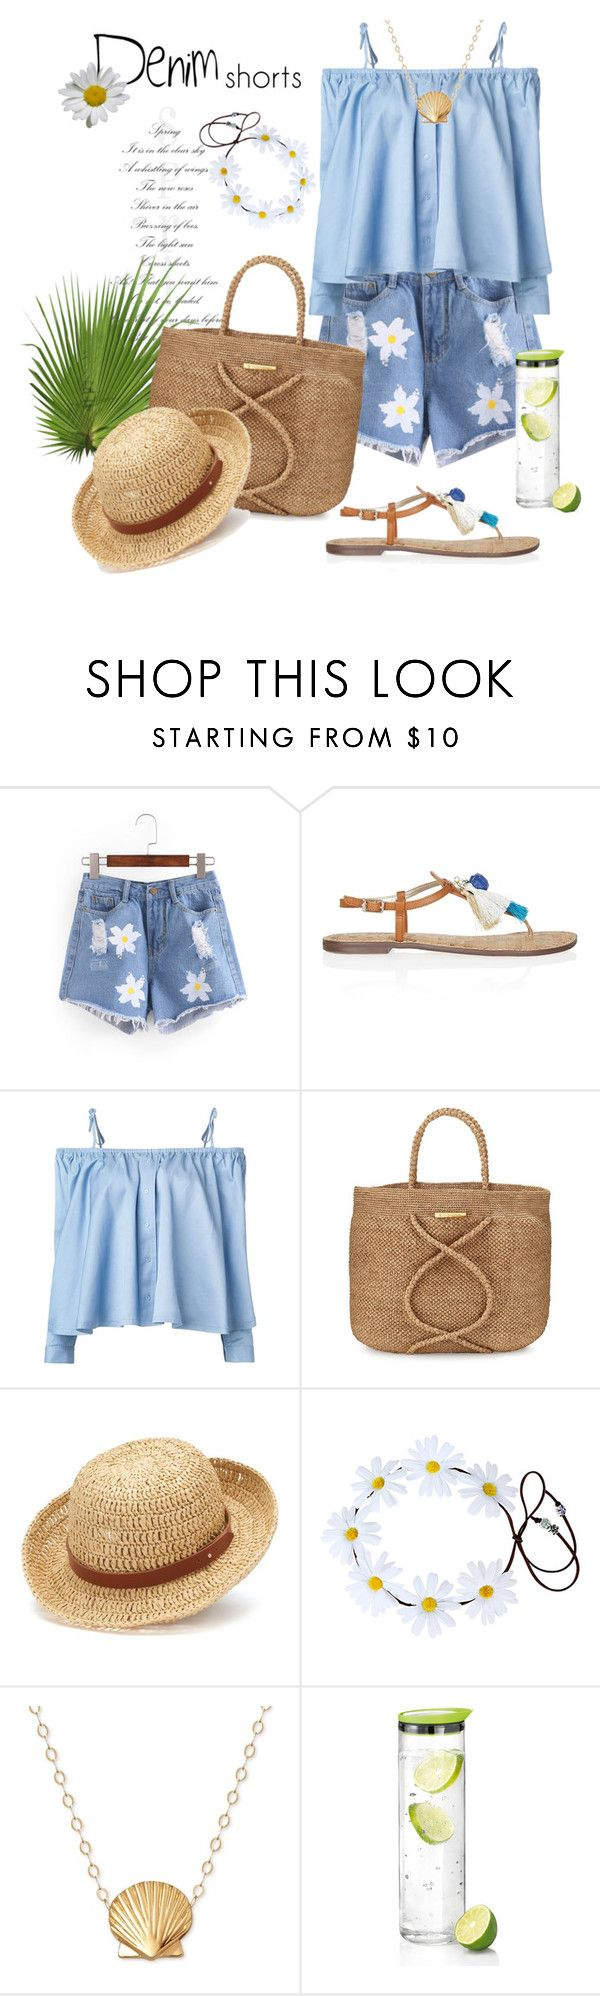 """Denim Shorts"" by rever-de-paris ❤ liked on Polyvore featuring Sam Edelman, Sandy Liang, ViX, Chaps, blomus, denimshorts, contestentry and polyvoreeditorial"